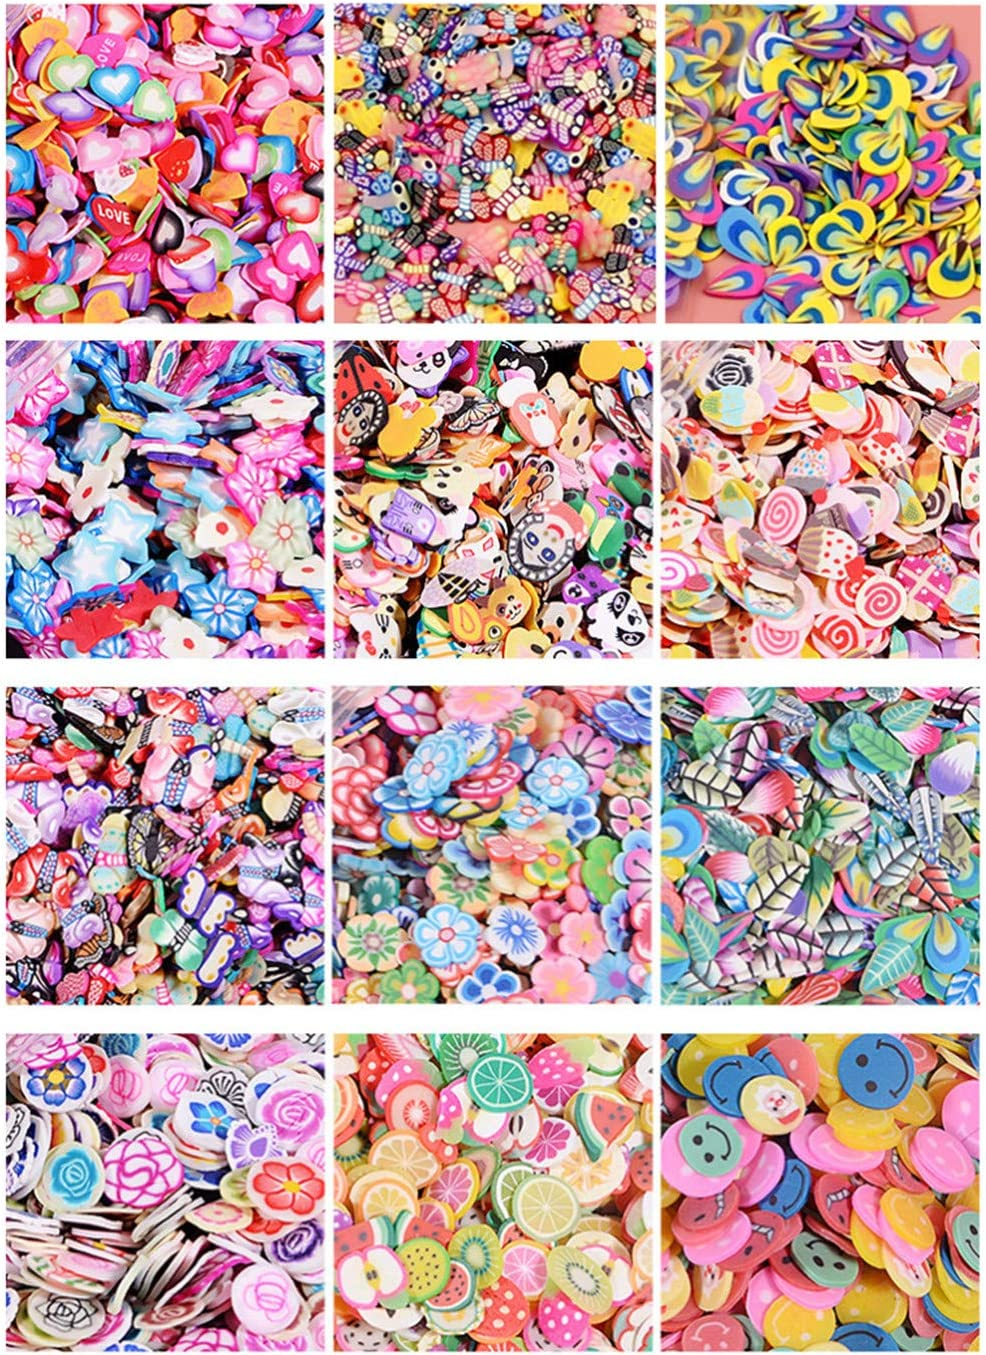 Zhiheng Assorted 12000 Pieces Small Fruit Flower Animal Slime Slices Roses Leaves Heart Dessert Smiley Shaped Resin Charms Flatback Buttons for Nail Accessories Miniature Fairy Garden Accessories